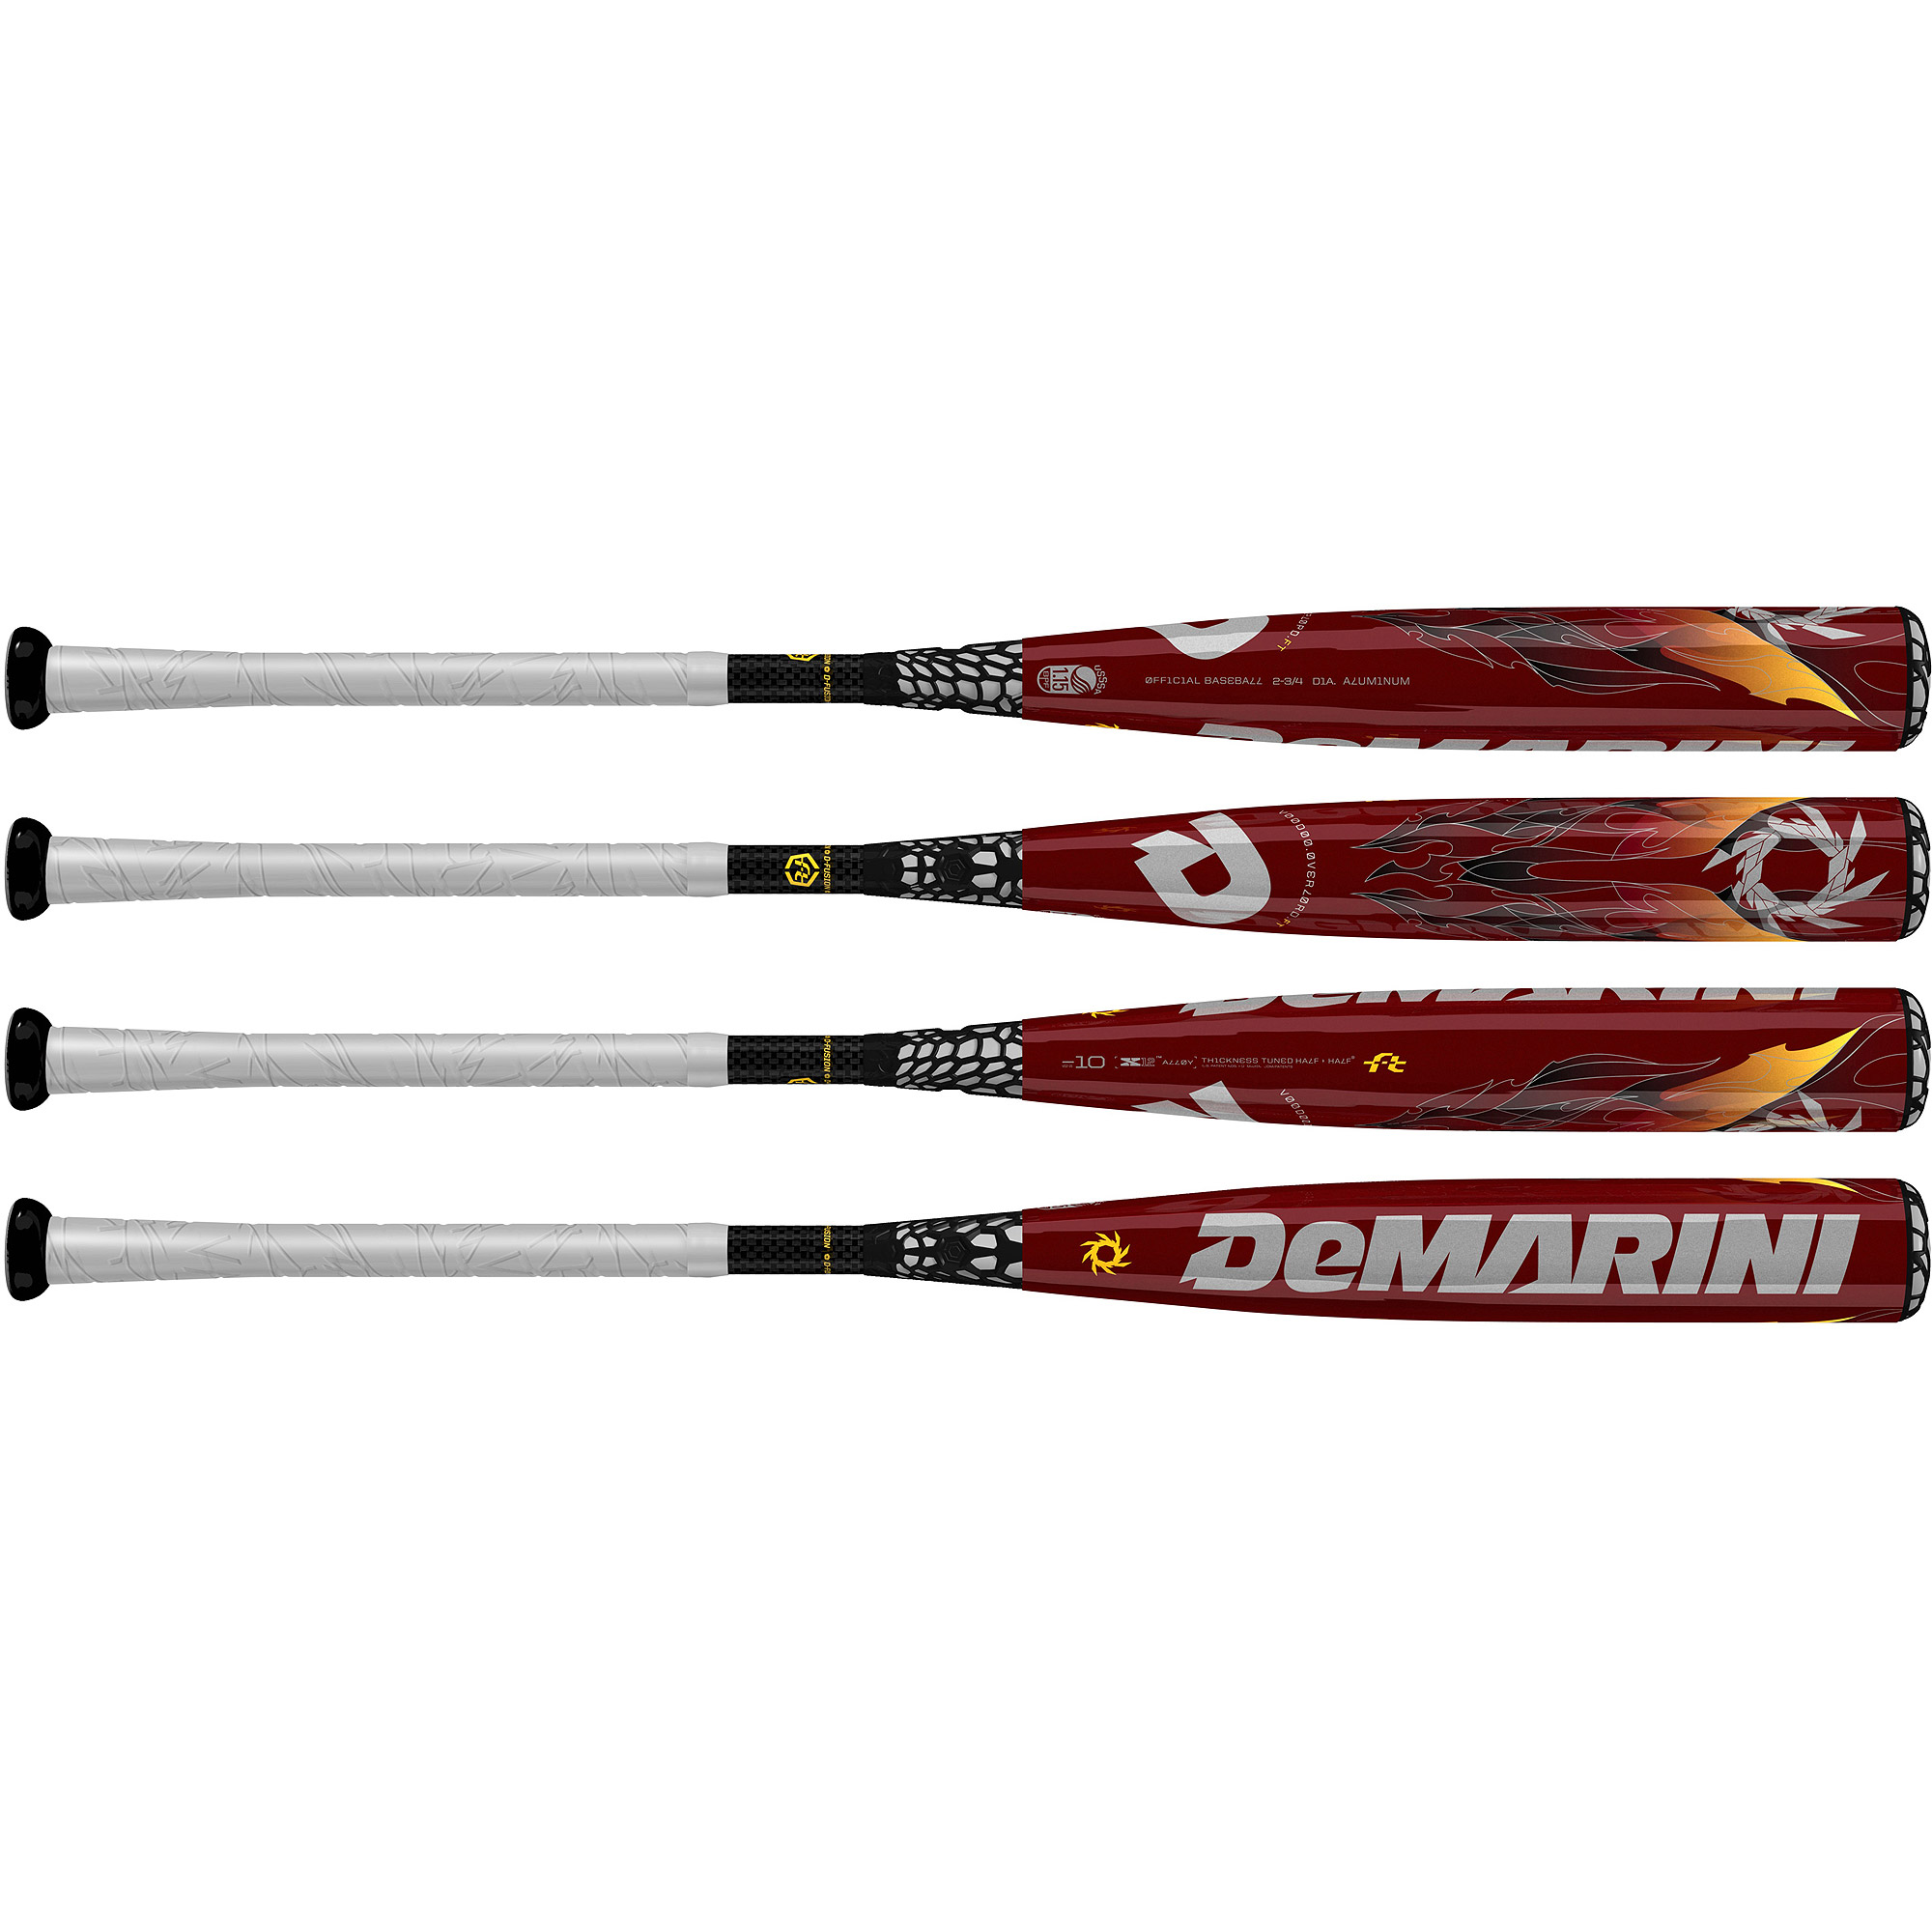 "DeMarini VooDoo Overlord FT Youth Big Barrel (2 3 4"") -10 Baseball Bat by Wilson Sporting Goods"